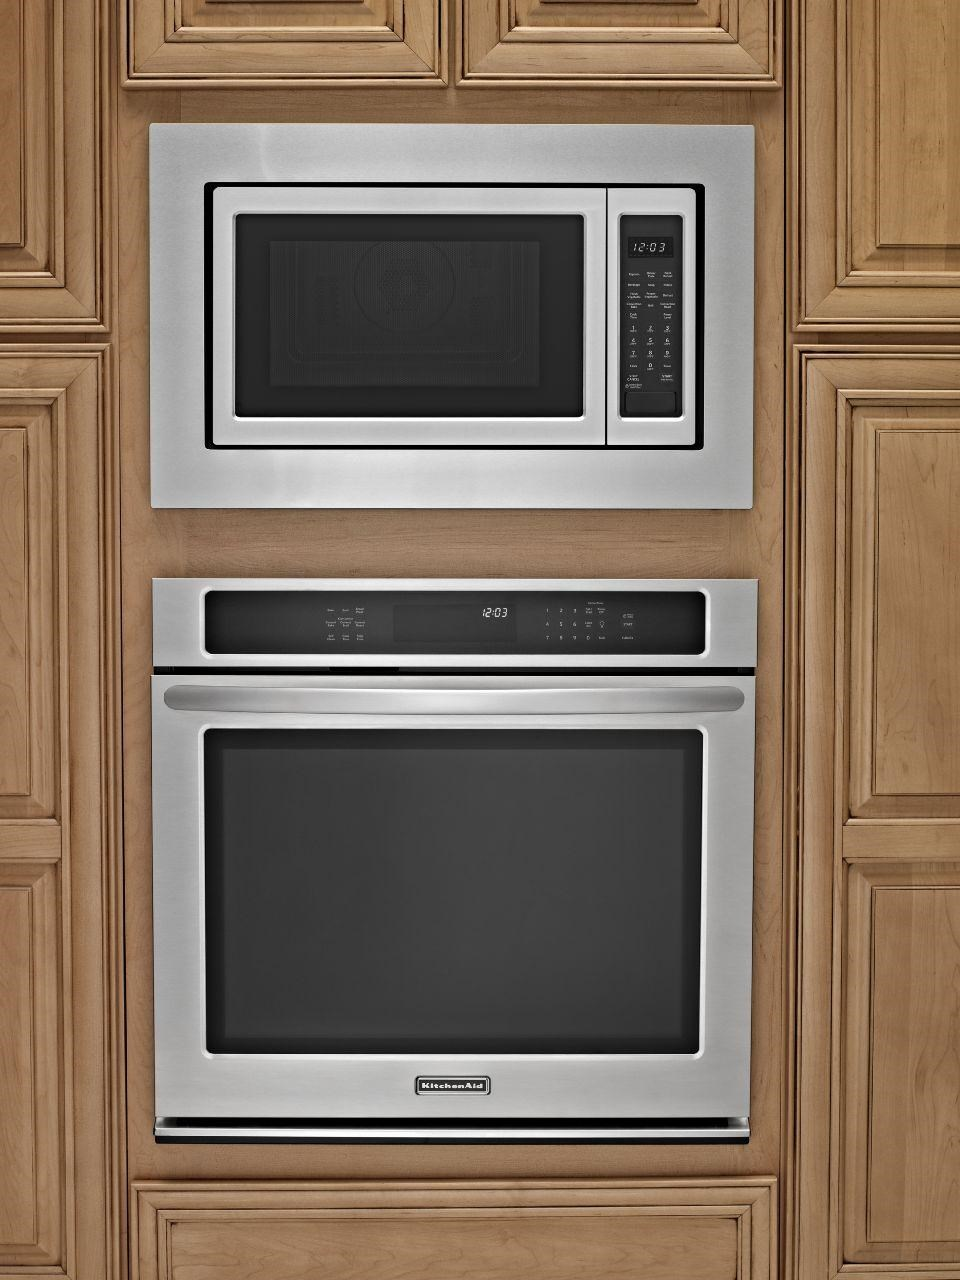 1200 Watt Countertop Convection Microwave Oven By KitchenAid